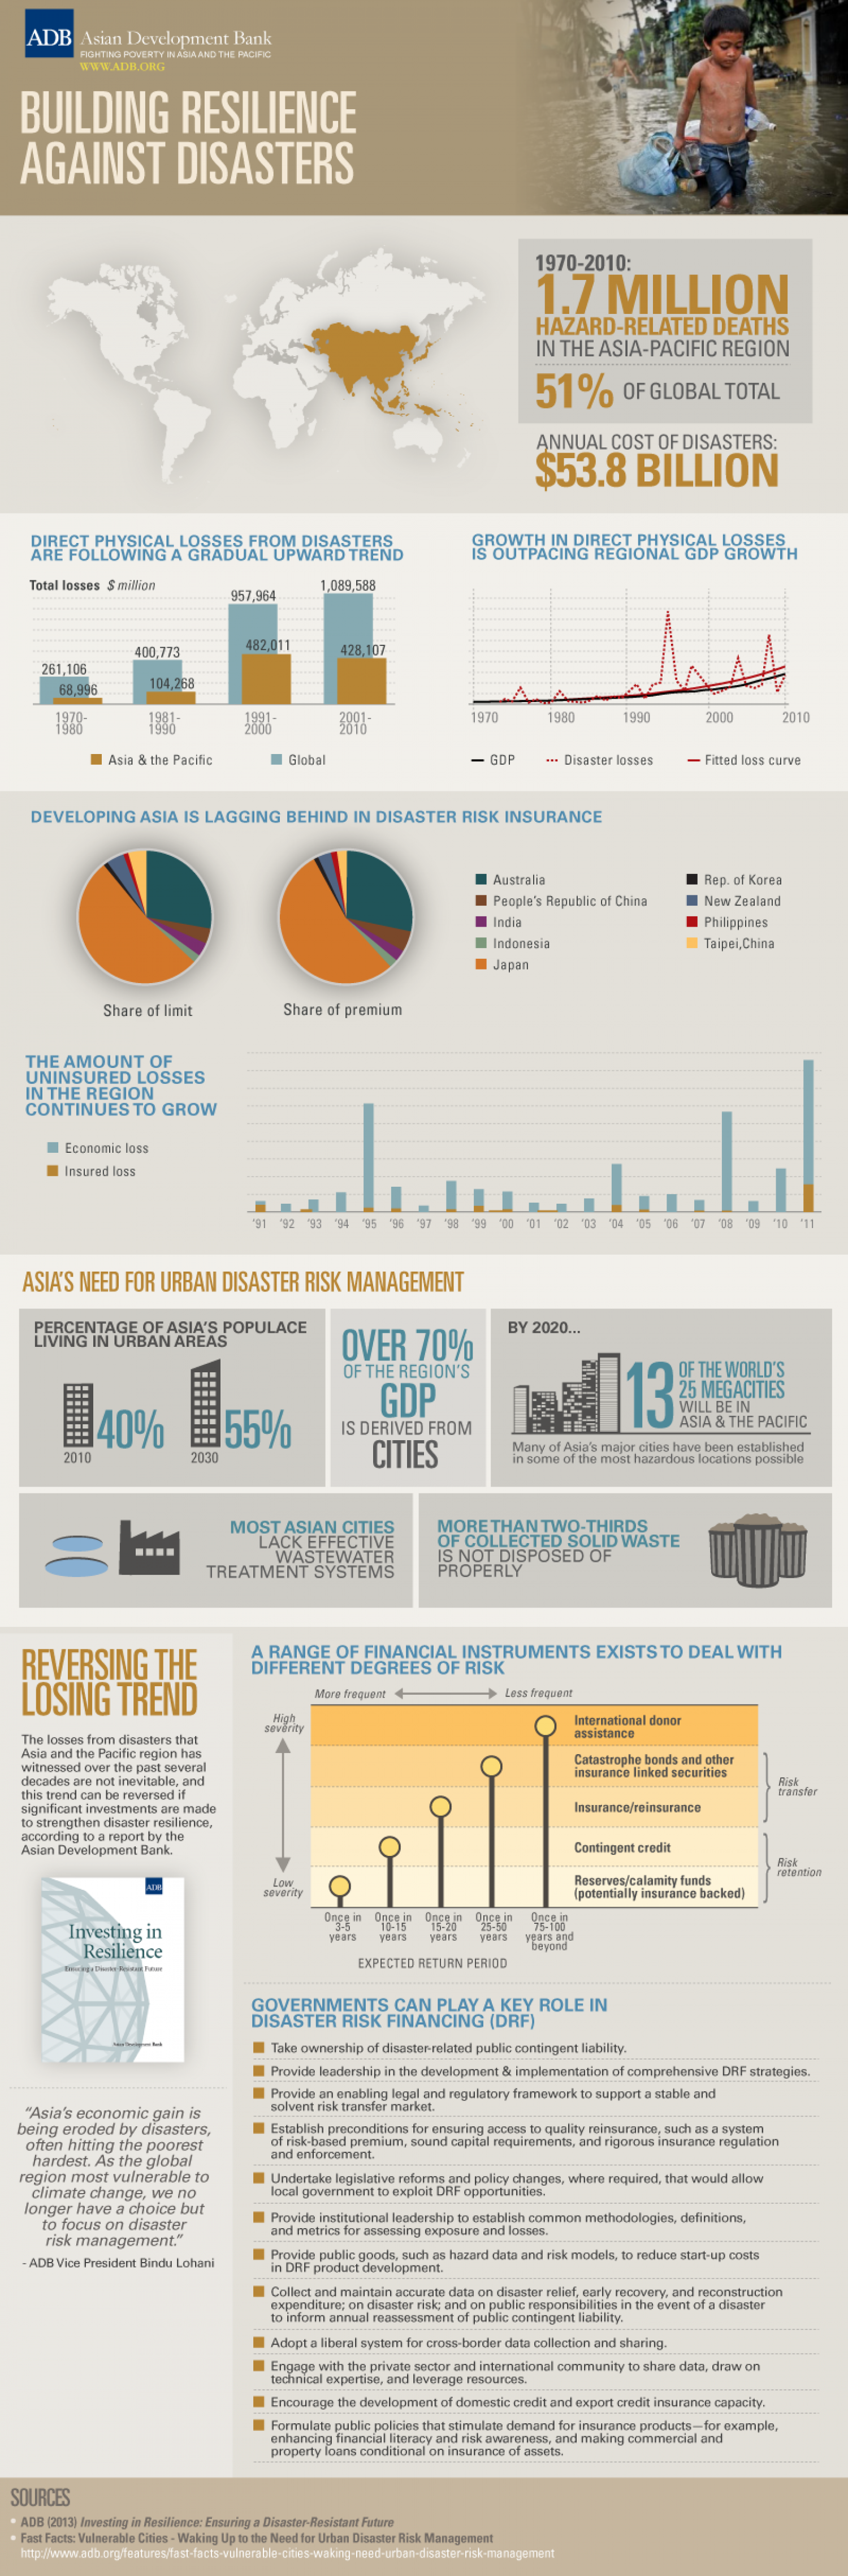 Building Resilience against Natural Disasters Infographic